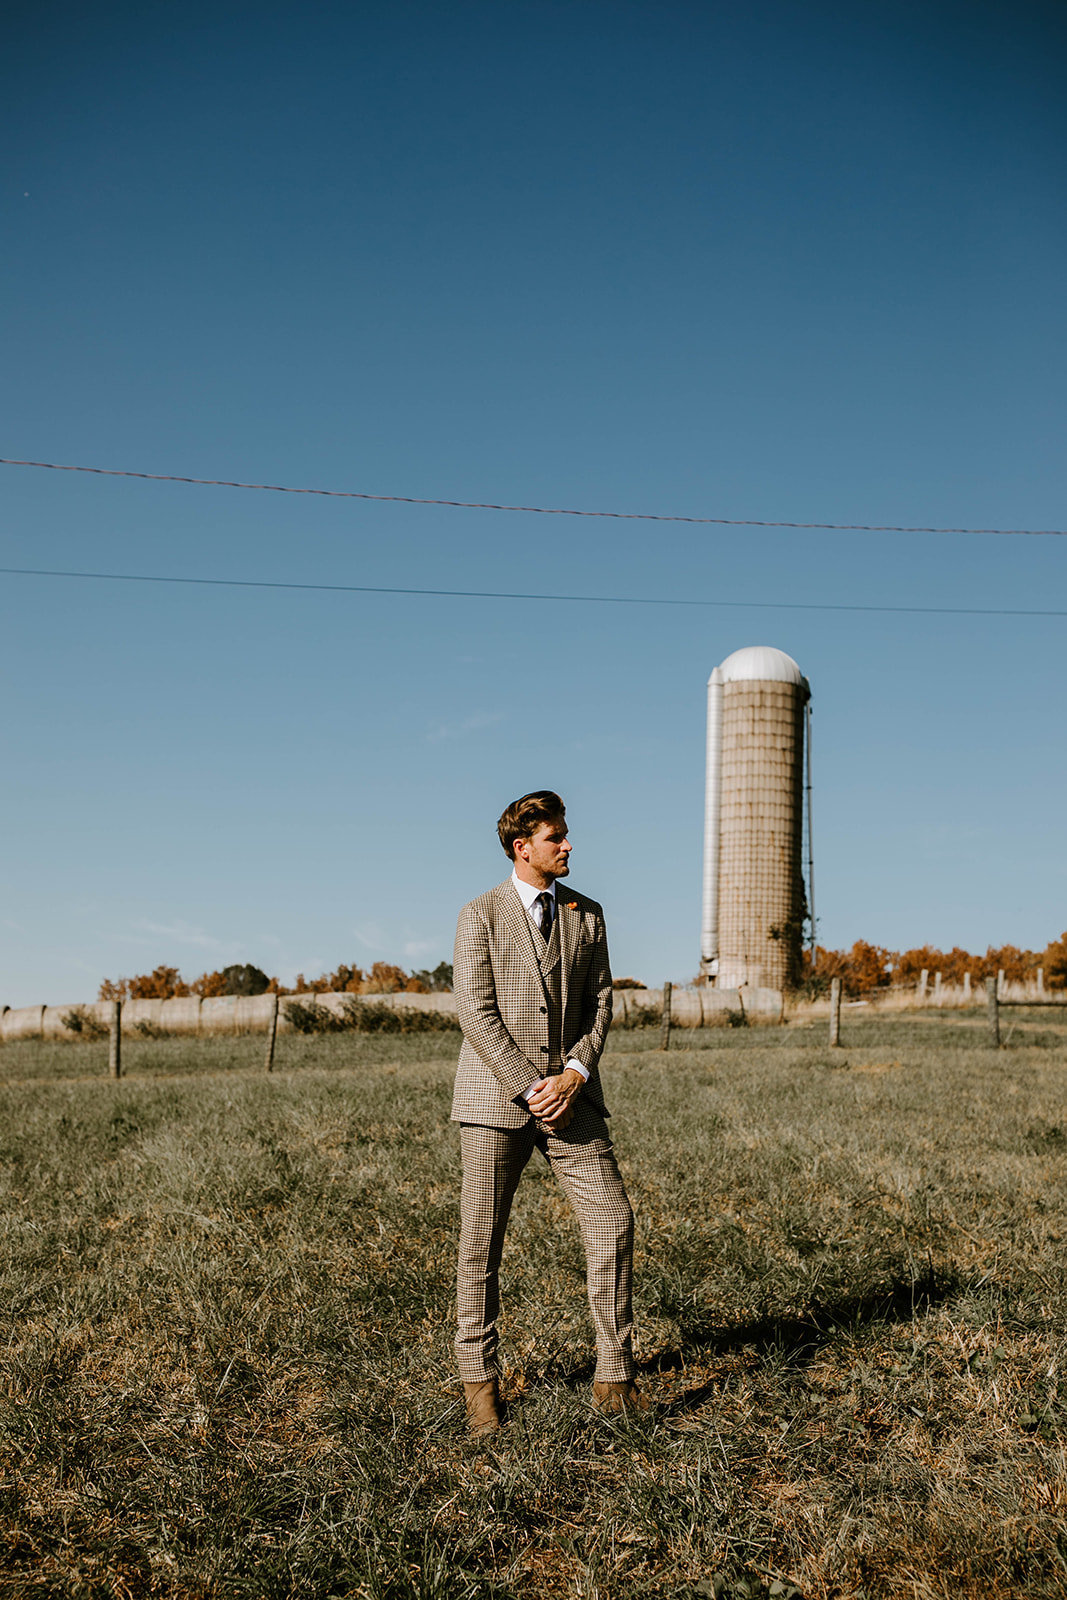 KENTUCY FARM WEDDING - LA WEDDING - COUNTRY WEDDING - COUNTRY CITY WEDDING - THE LOVELY LENS PHOTOGRAPHER_-321_websize